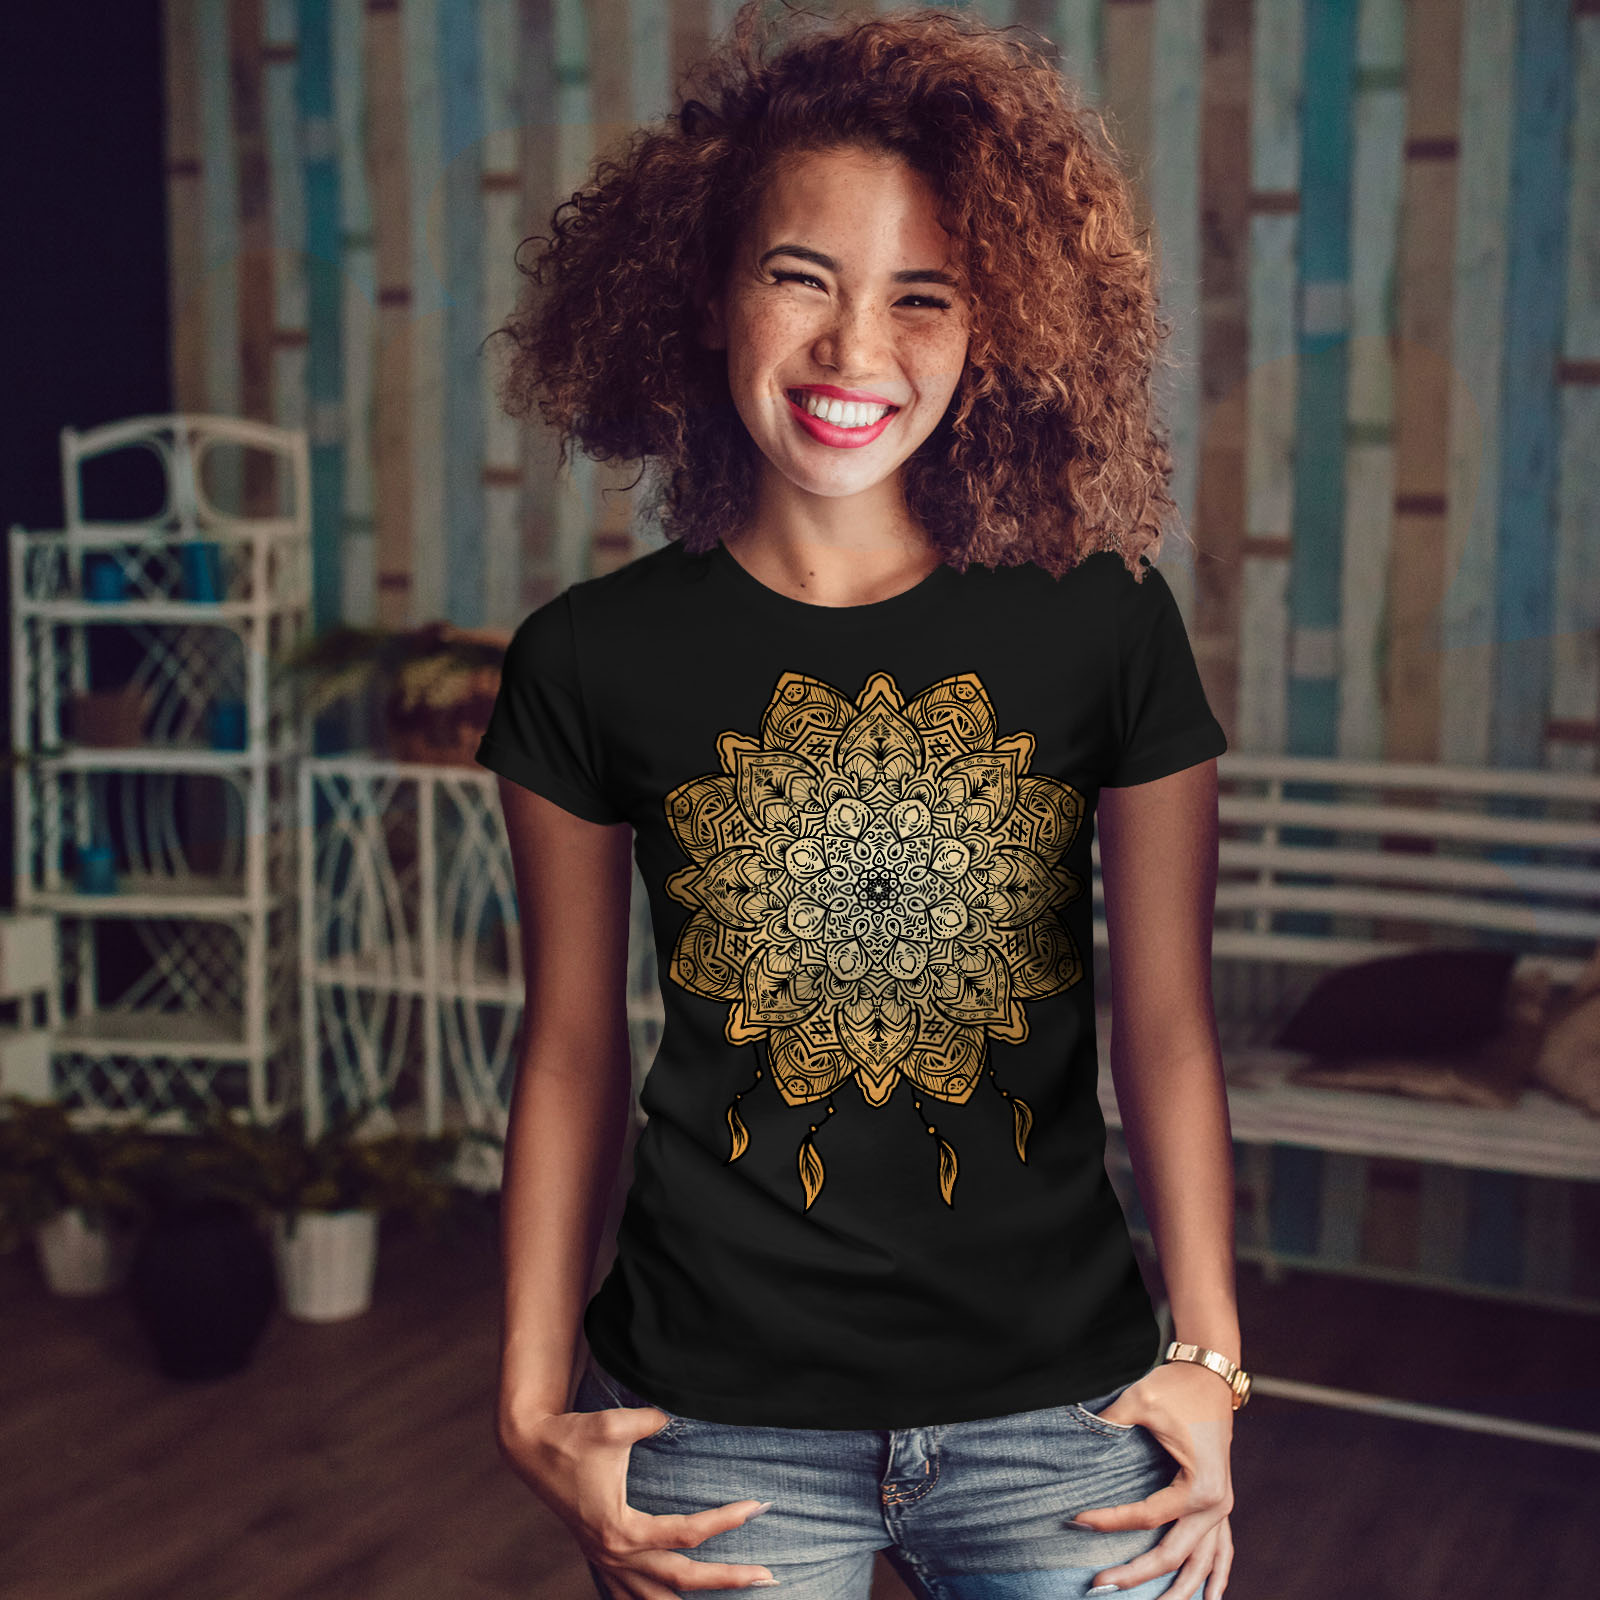 Wellcoda-Mandala-Yoga-Womens-T-shirt-Spiritual-Casual-Design-Printed-Tee thumbnail 4